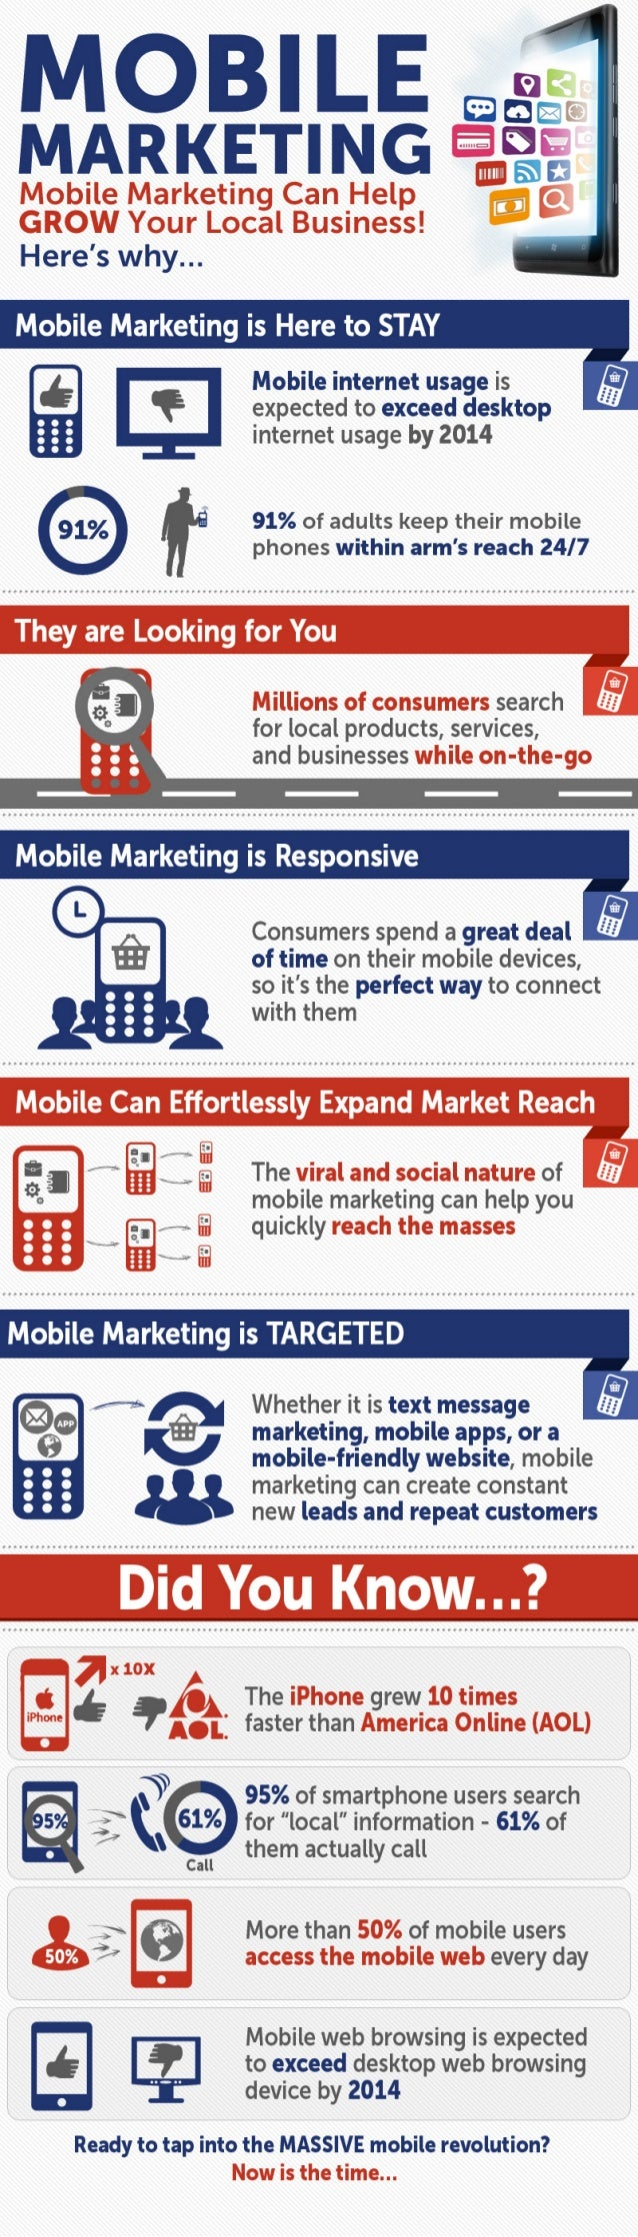 Mobile Marketing is Here to STAY